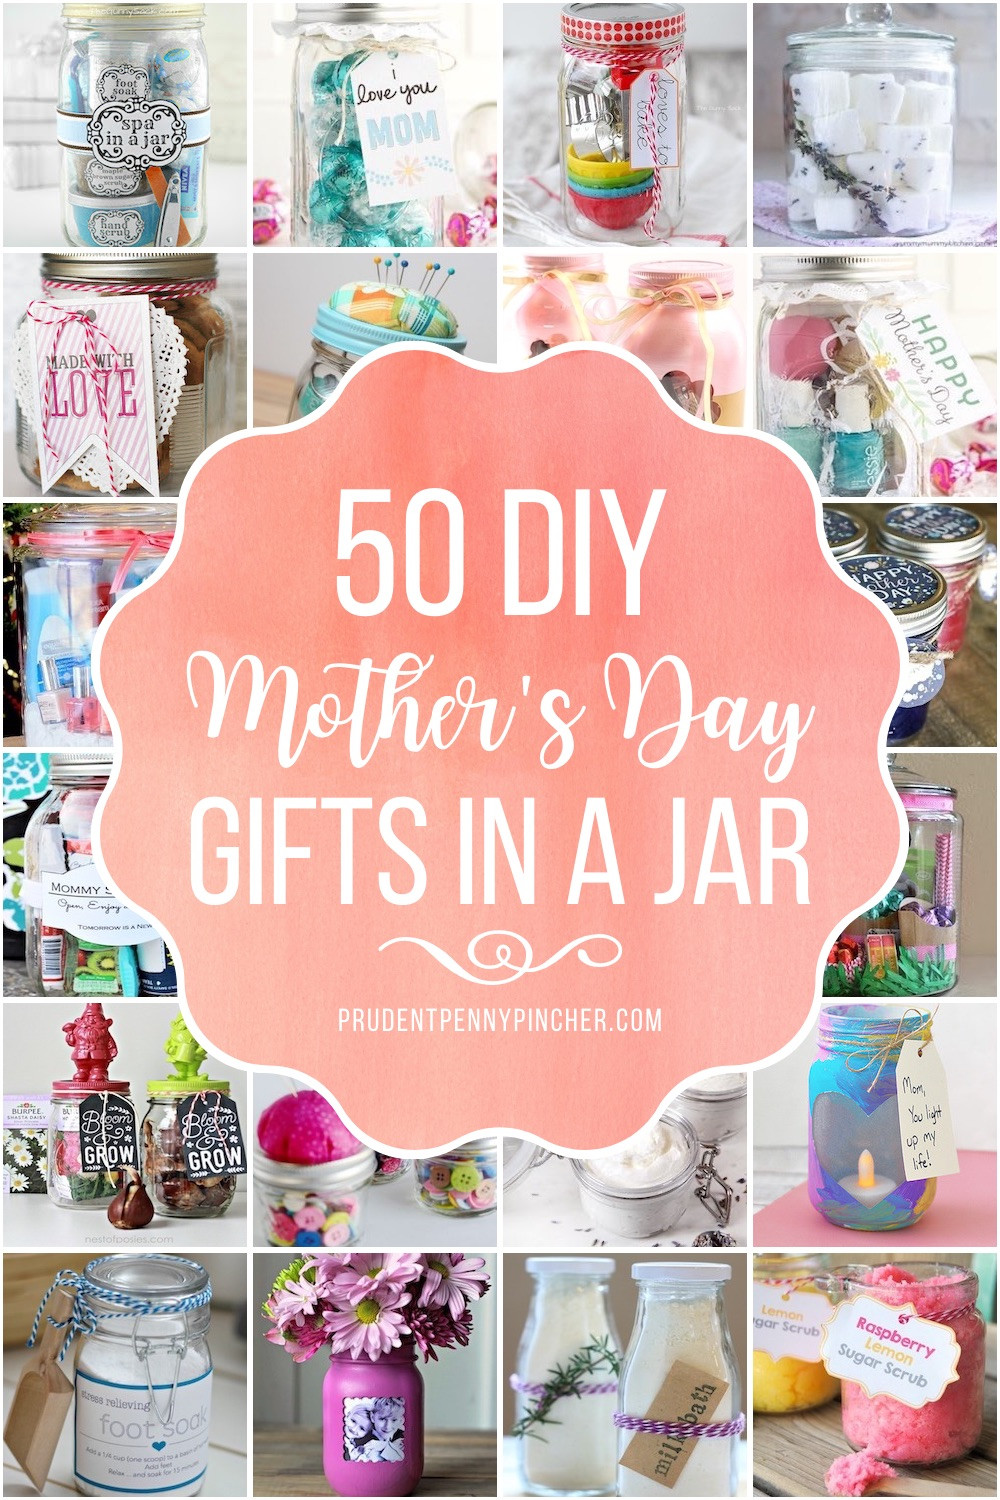 50 Diy Mother S Day Gifts In A Jar Prudent Penny Pincher